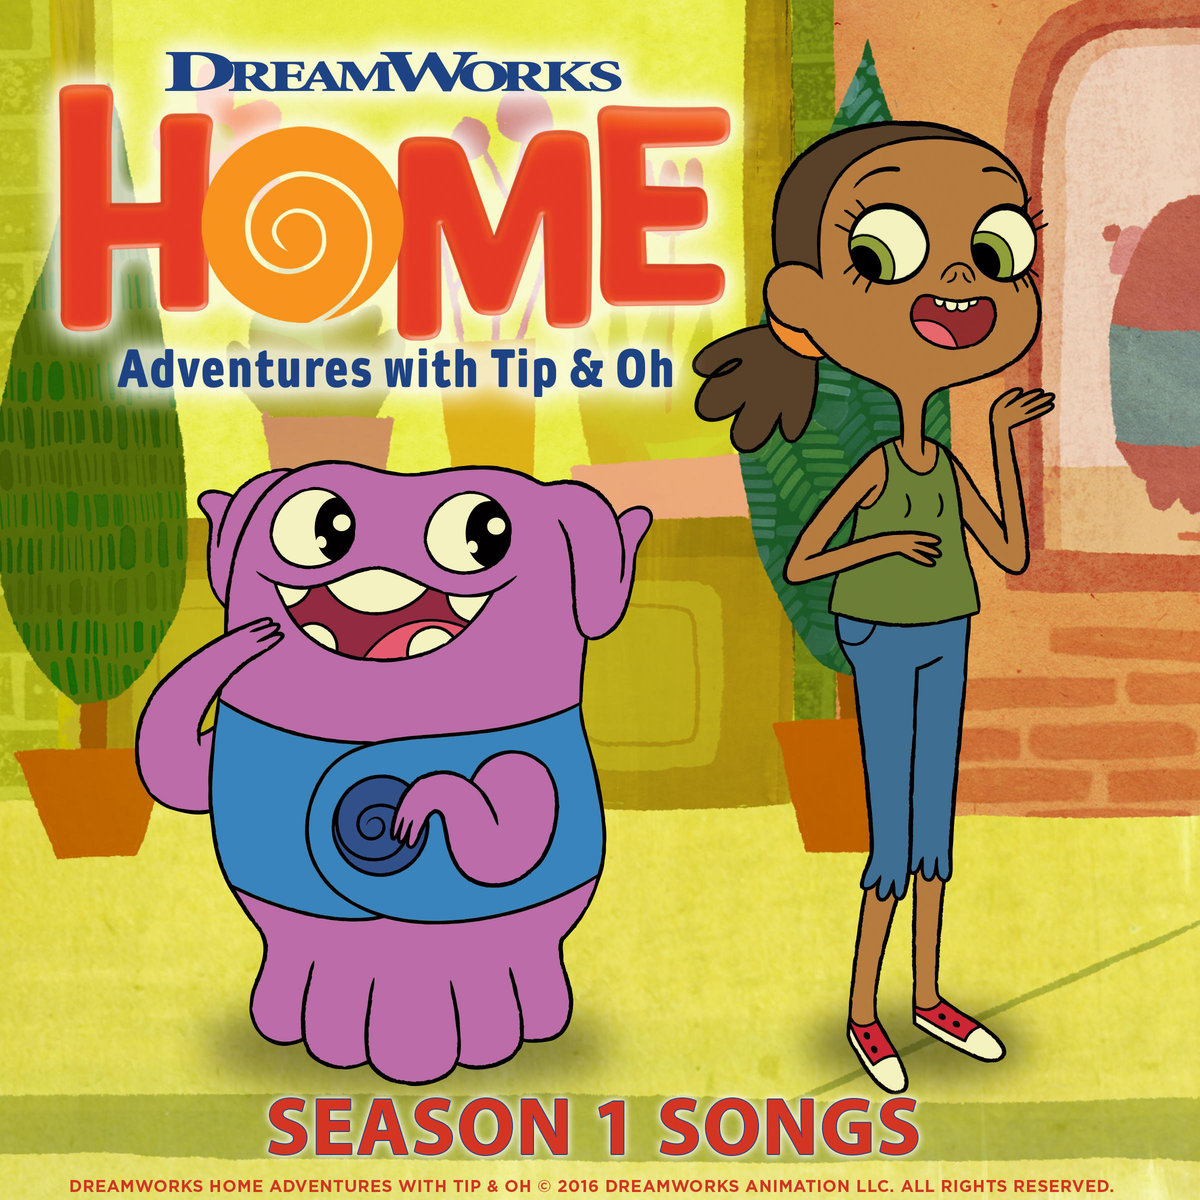 Home: Adventures with Tip & Oh Season 1 Songs